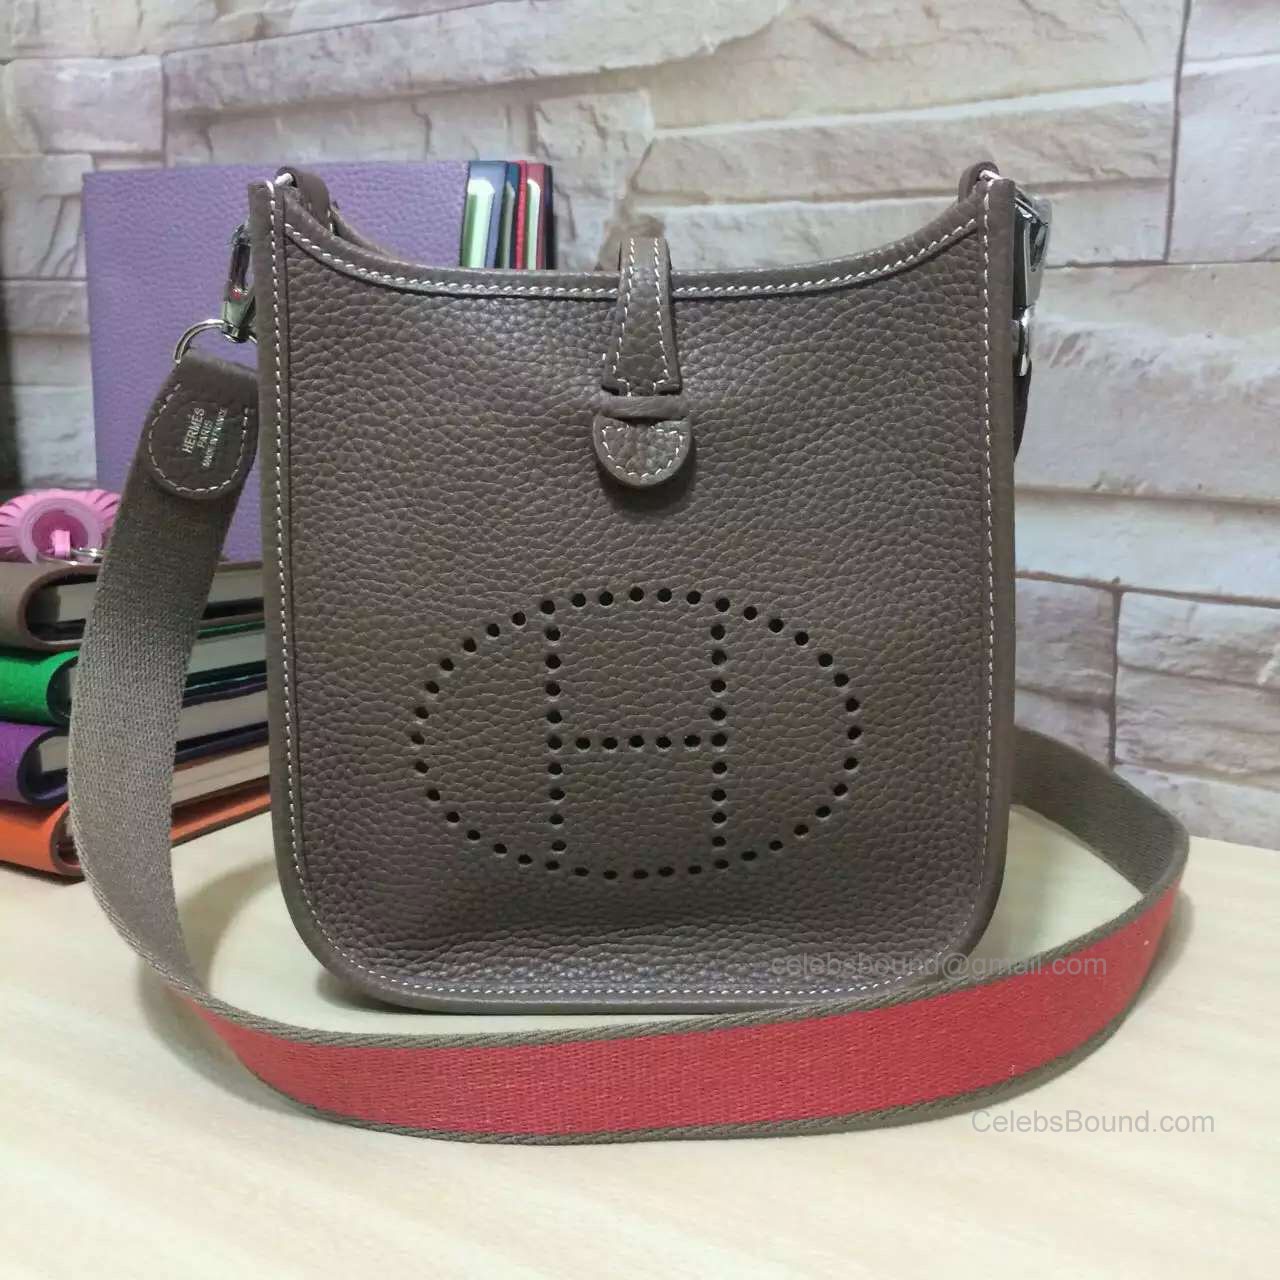 Hermes Evelyne III Bag in Etoupe Togo Leather TPM